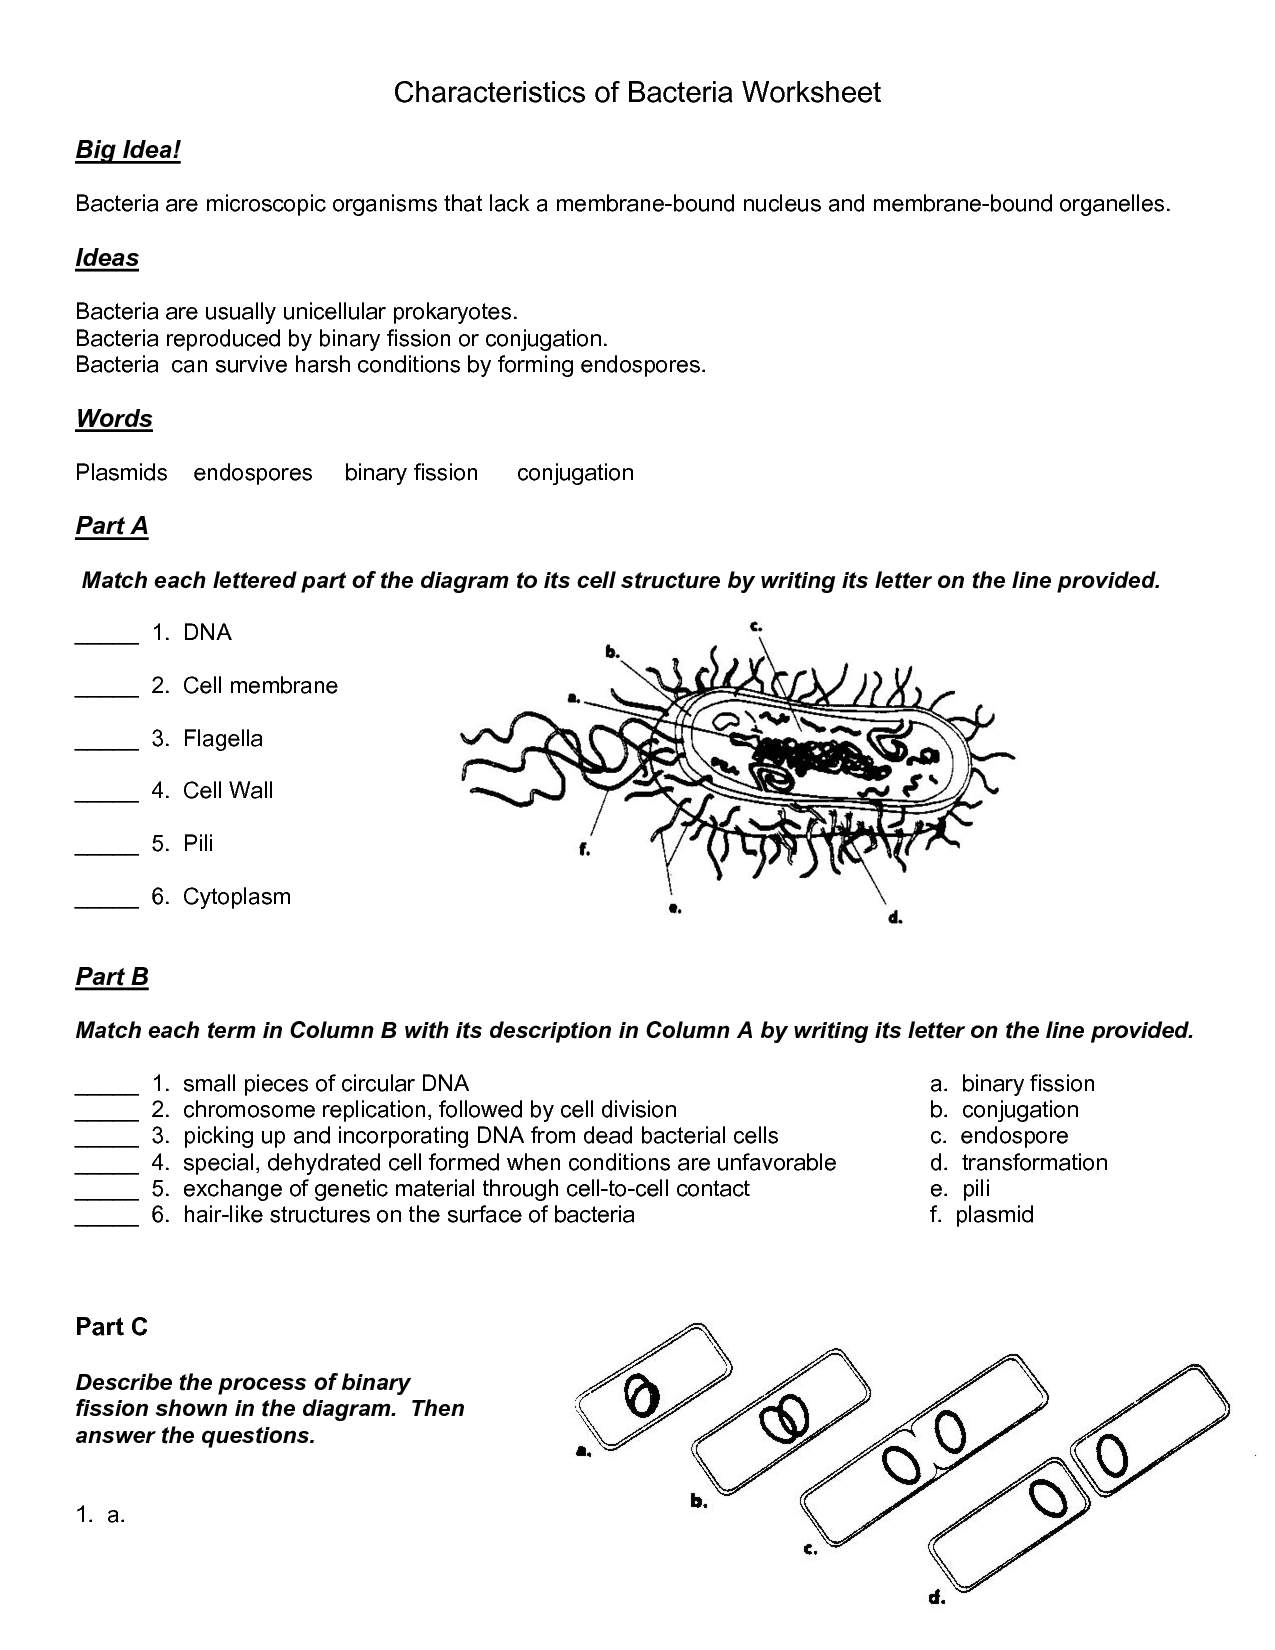 Worksheet On Bacteria Webquest